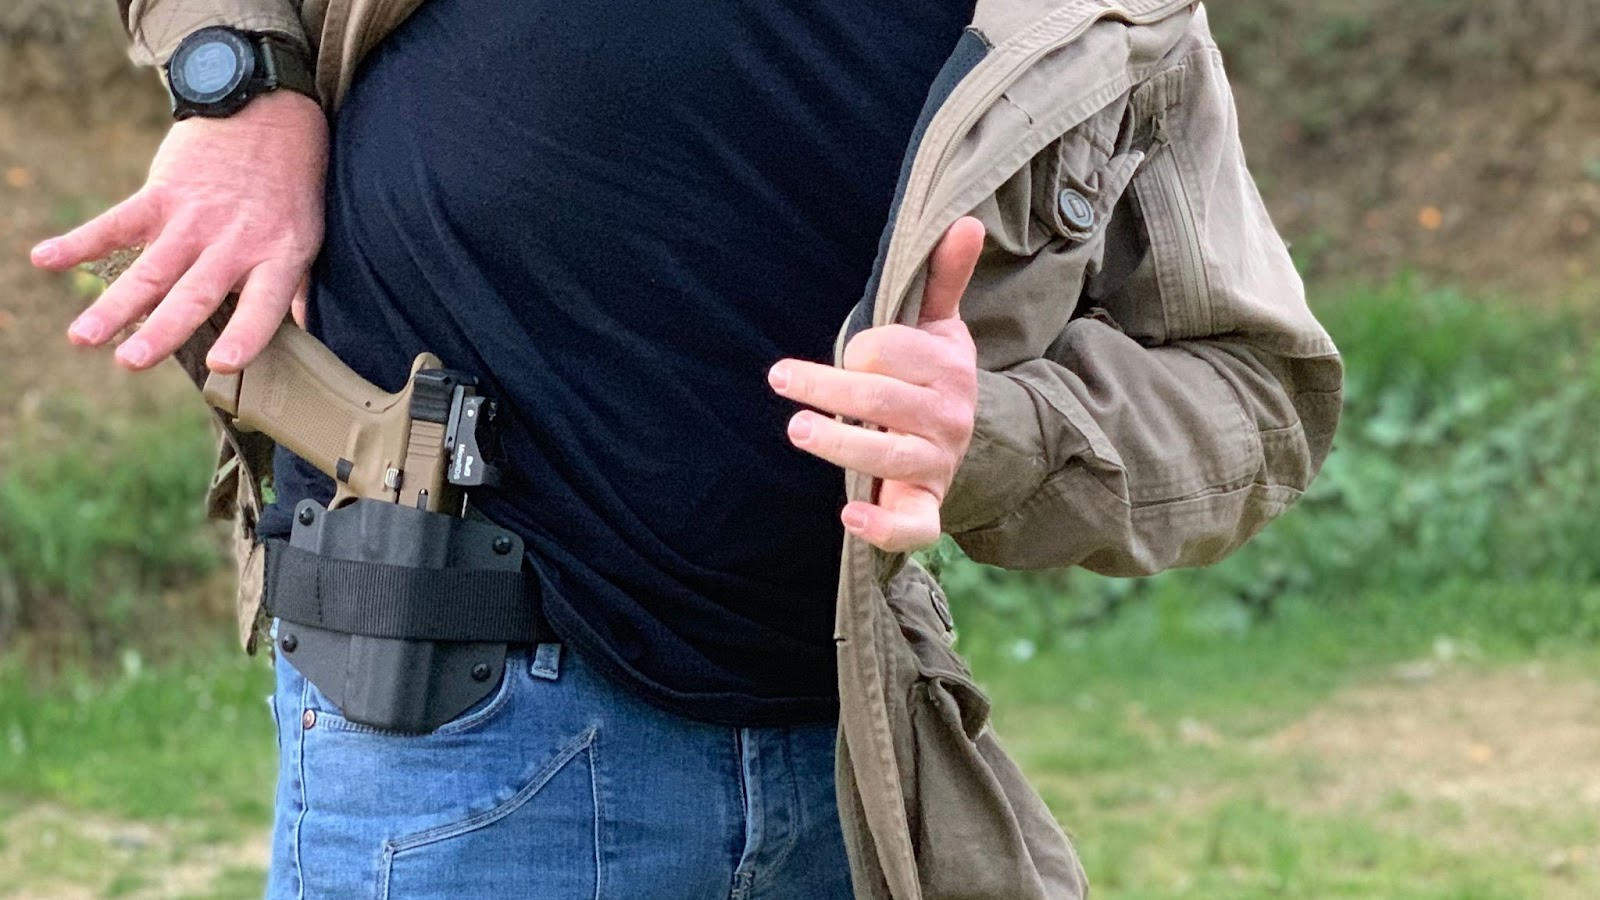 3 oclock position concealed carry